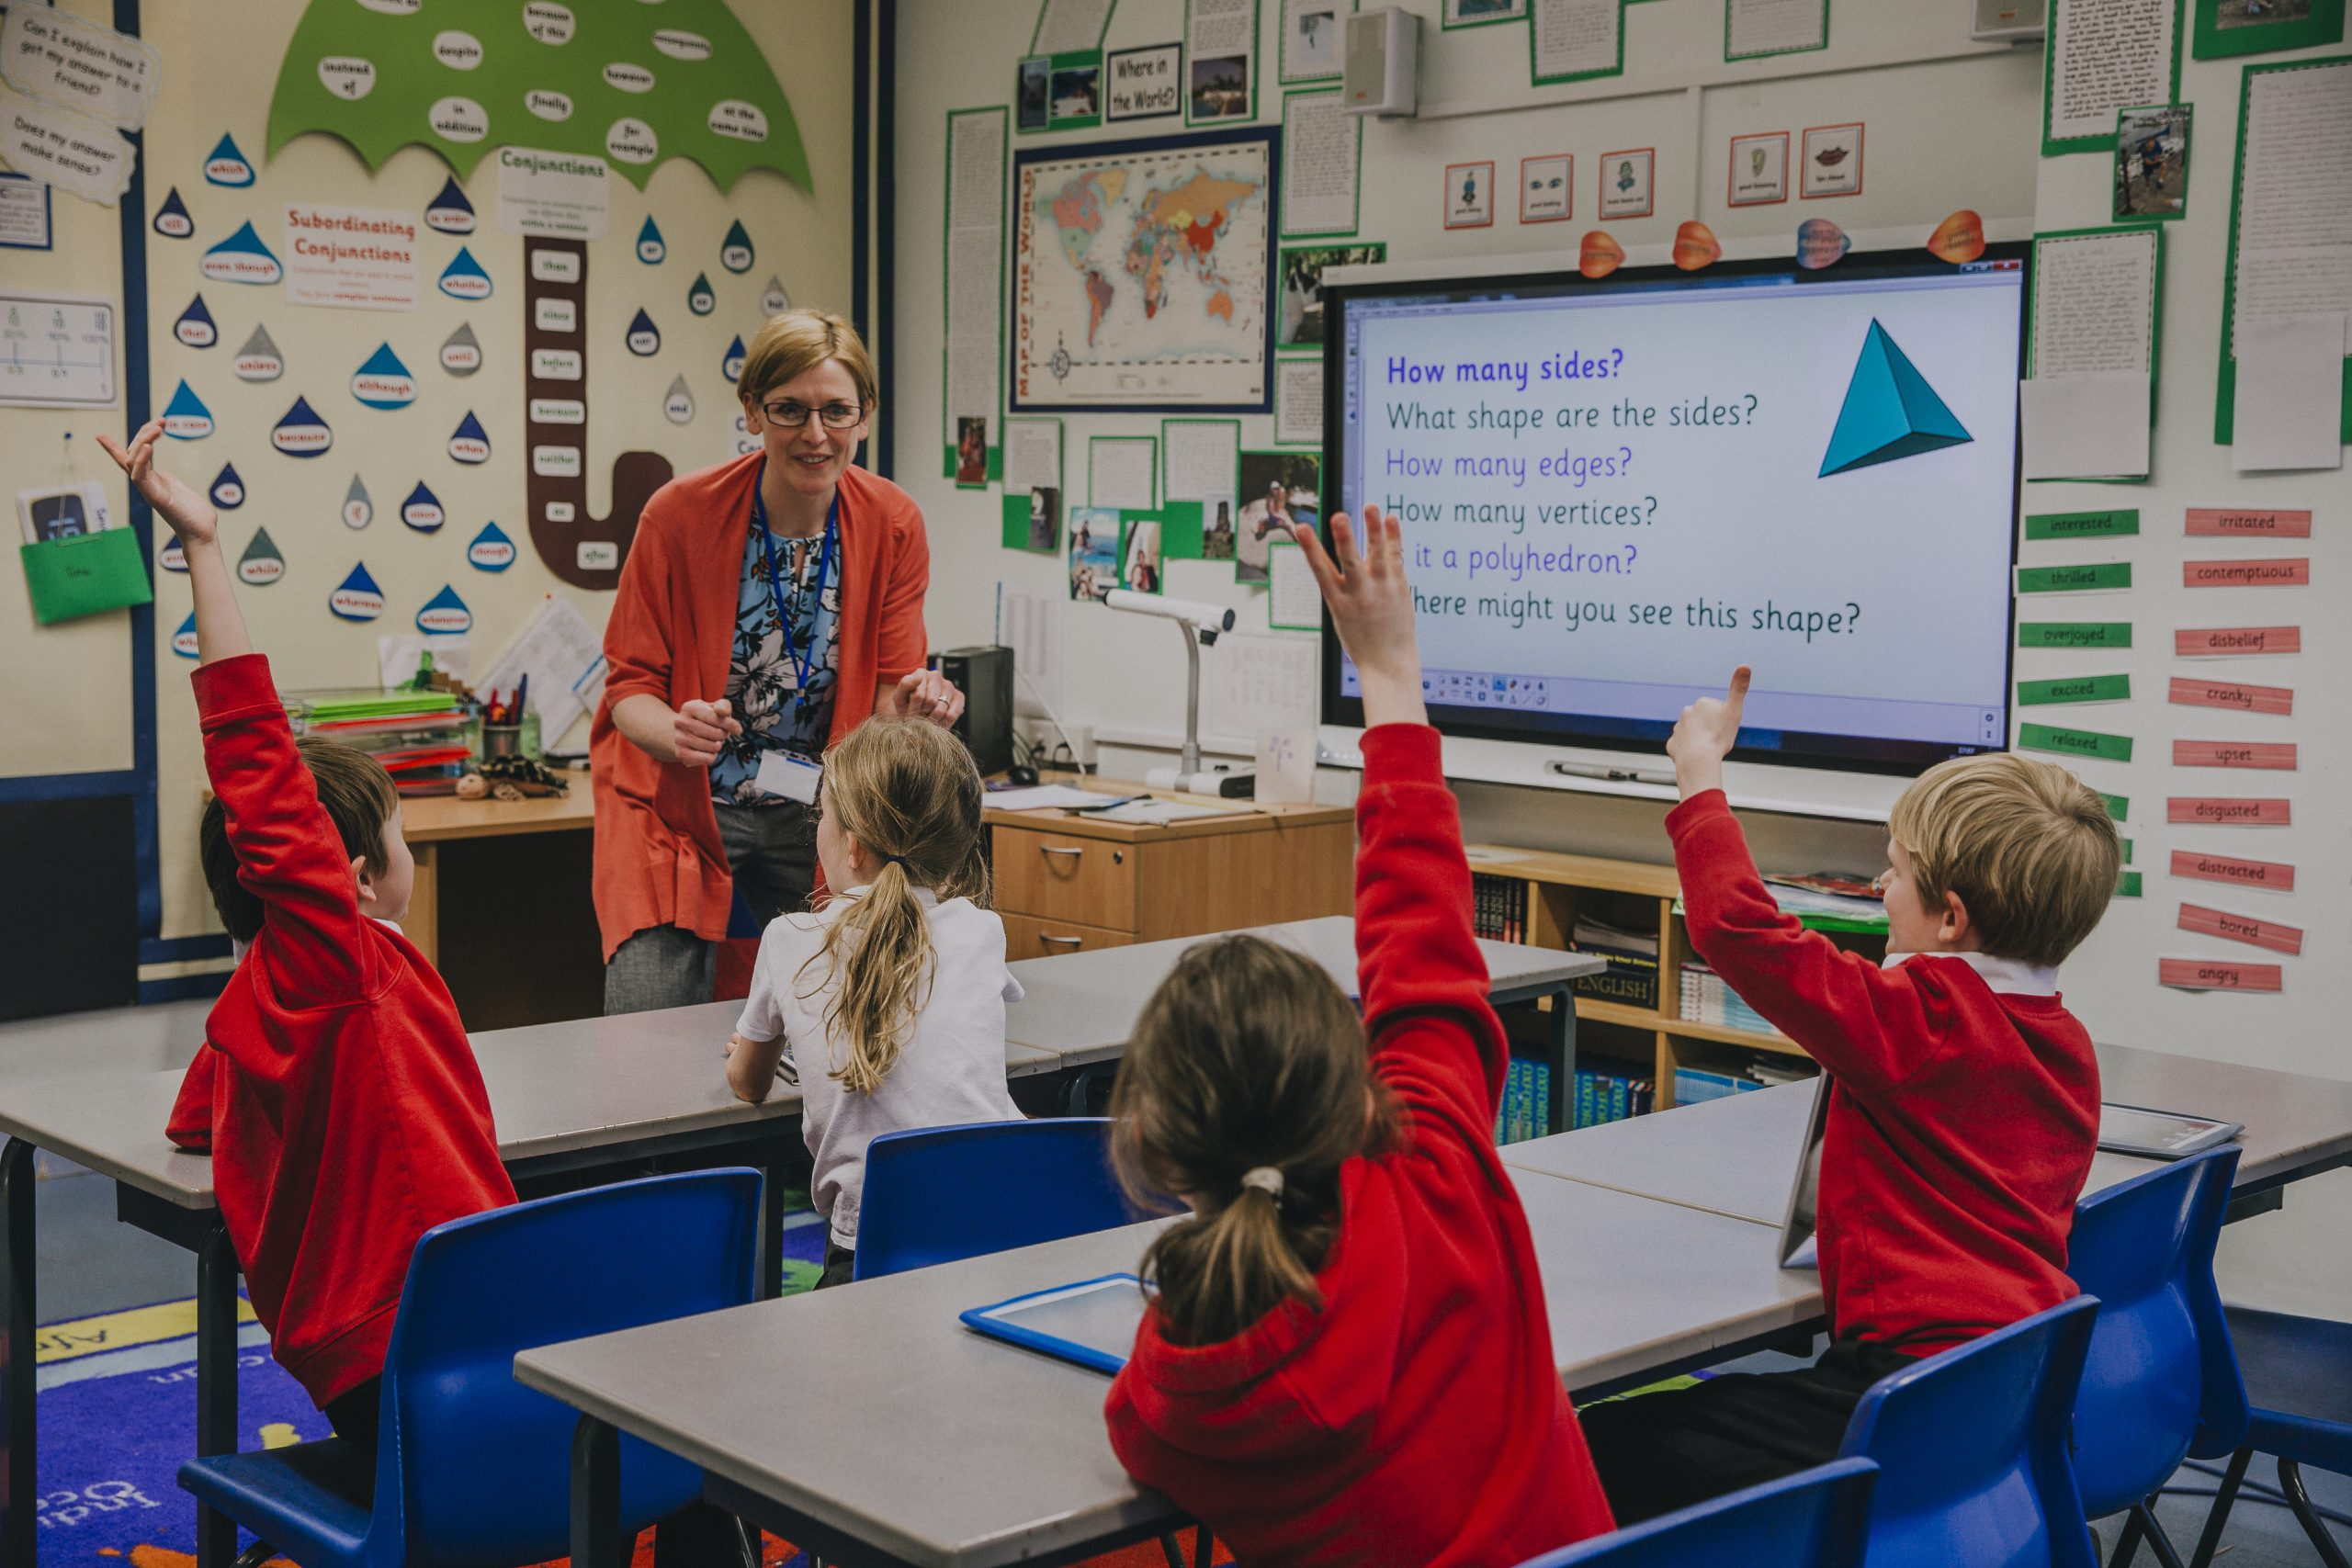 Female teacher is teaching shapes to her primary school students. She is asking hem a question and some of the students have their hand in the air to answer.